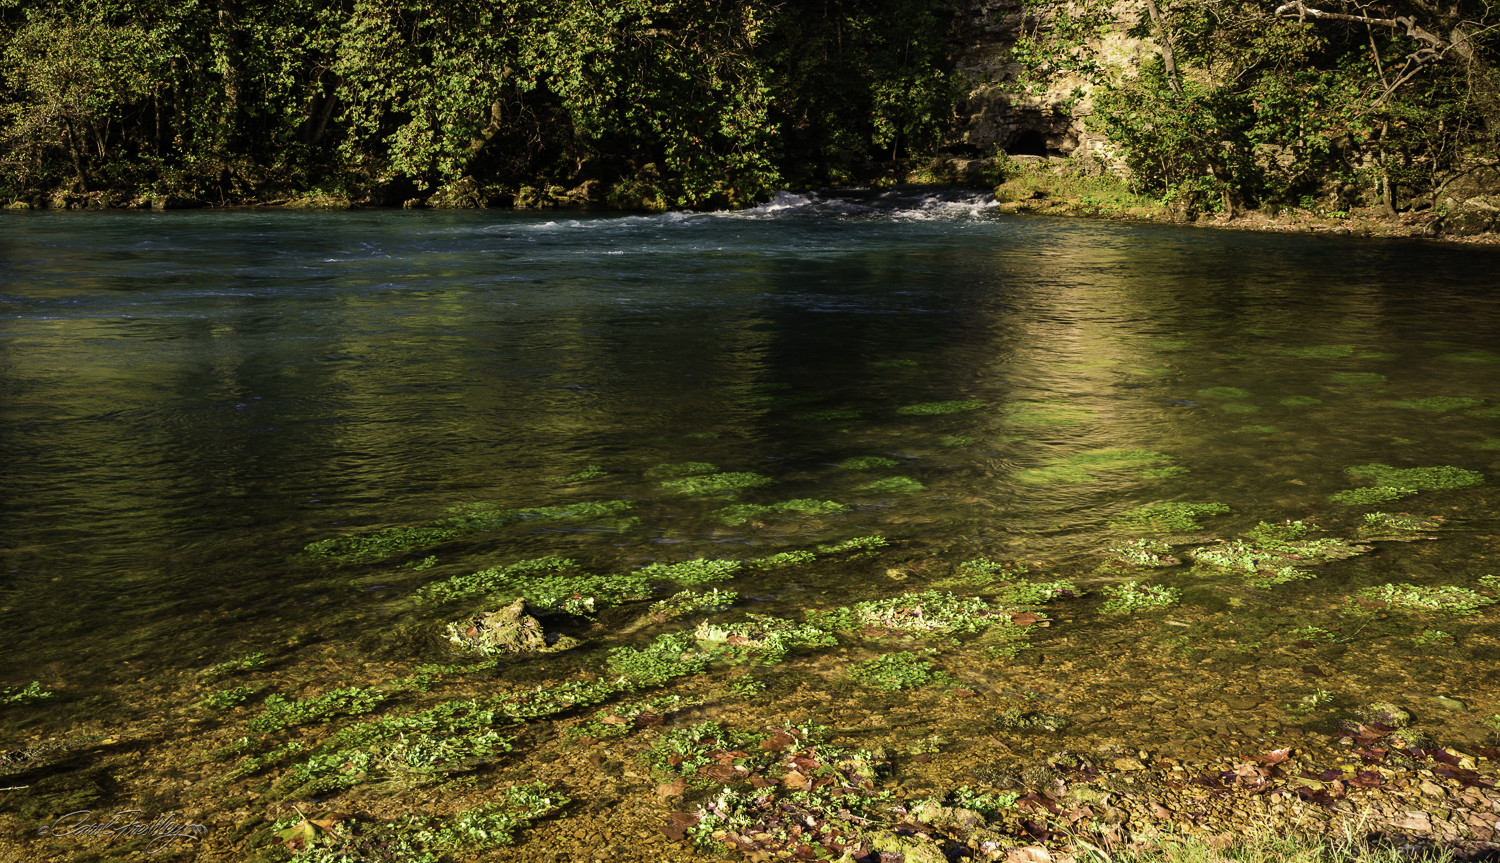 Watercress abounds in the mineral rich water.  It is hard to properly show just how clear this water is.